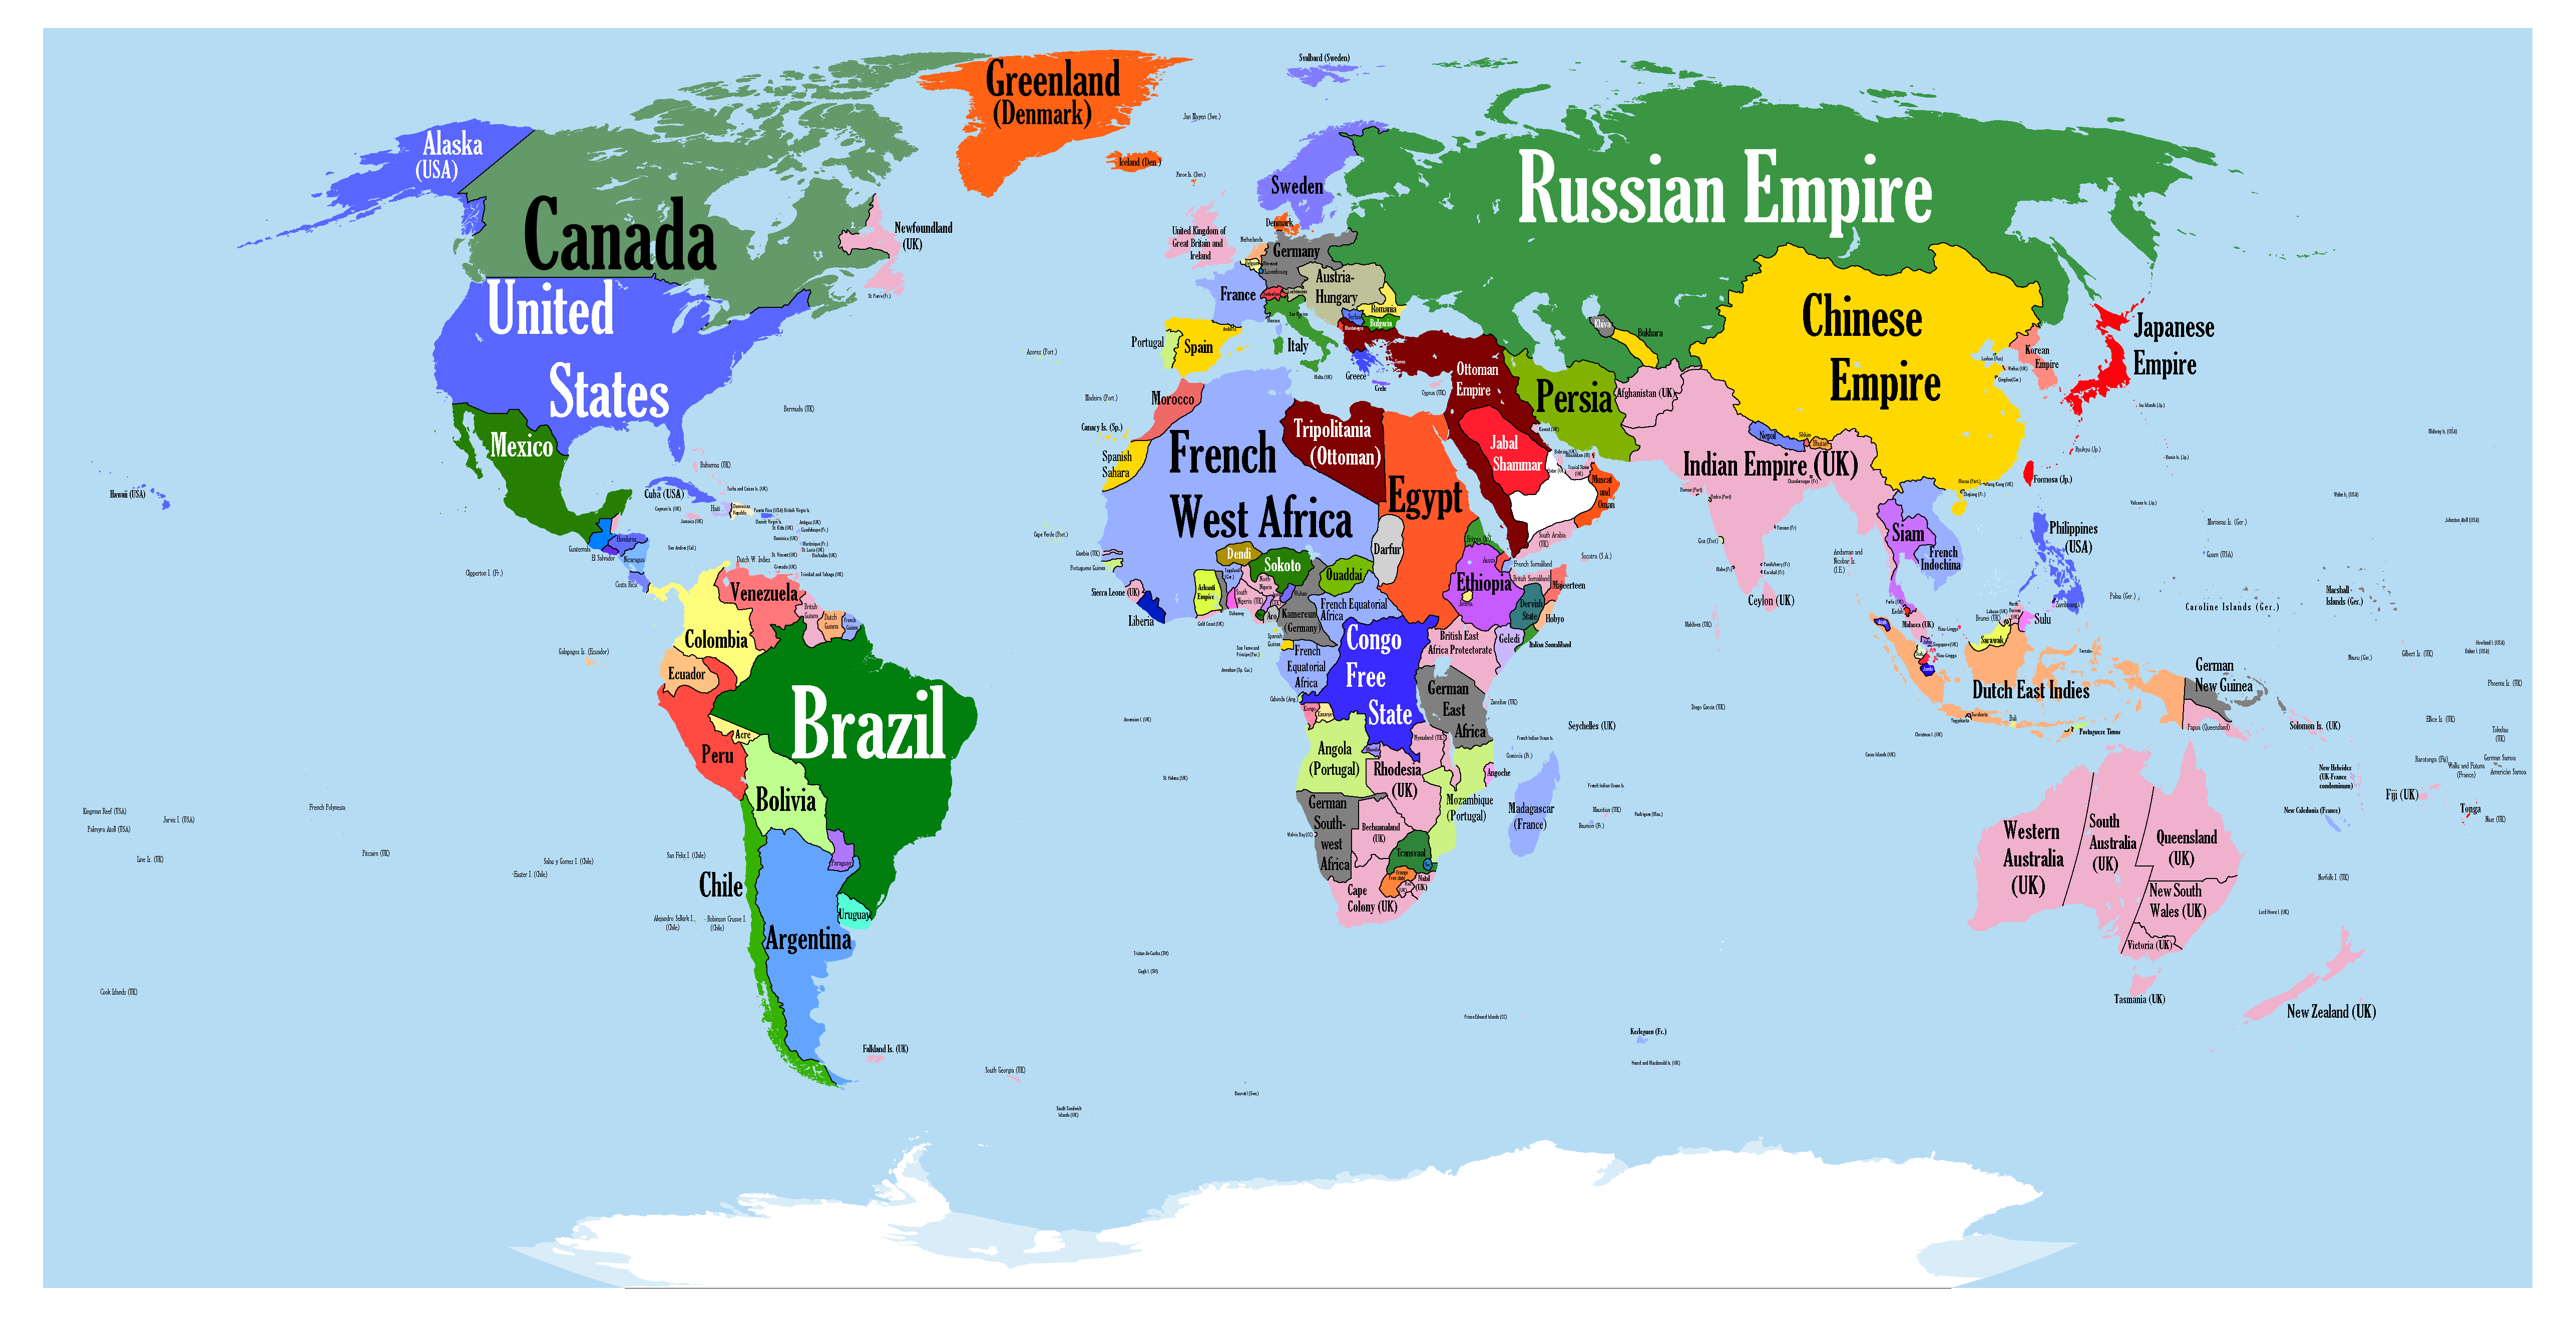 1900 World Map The World in 1900 | Maps | Map, World, European history